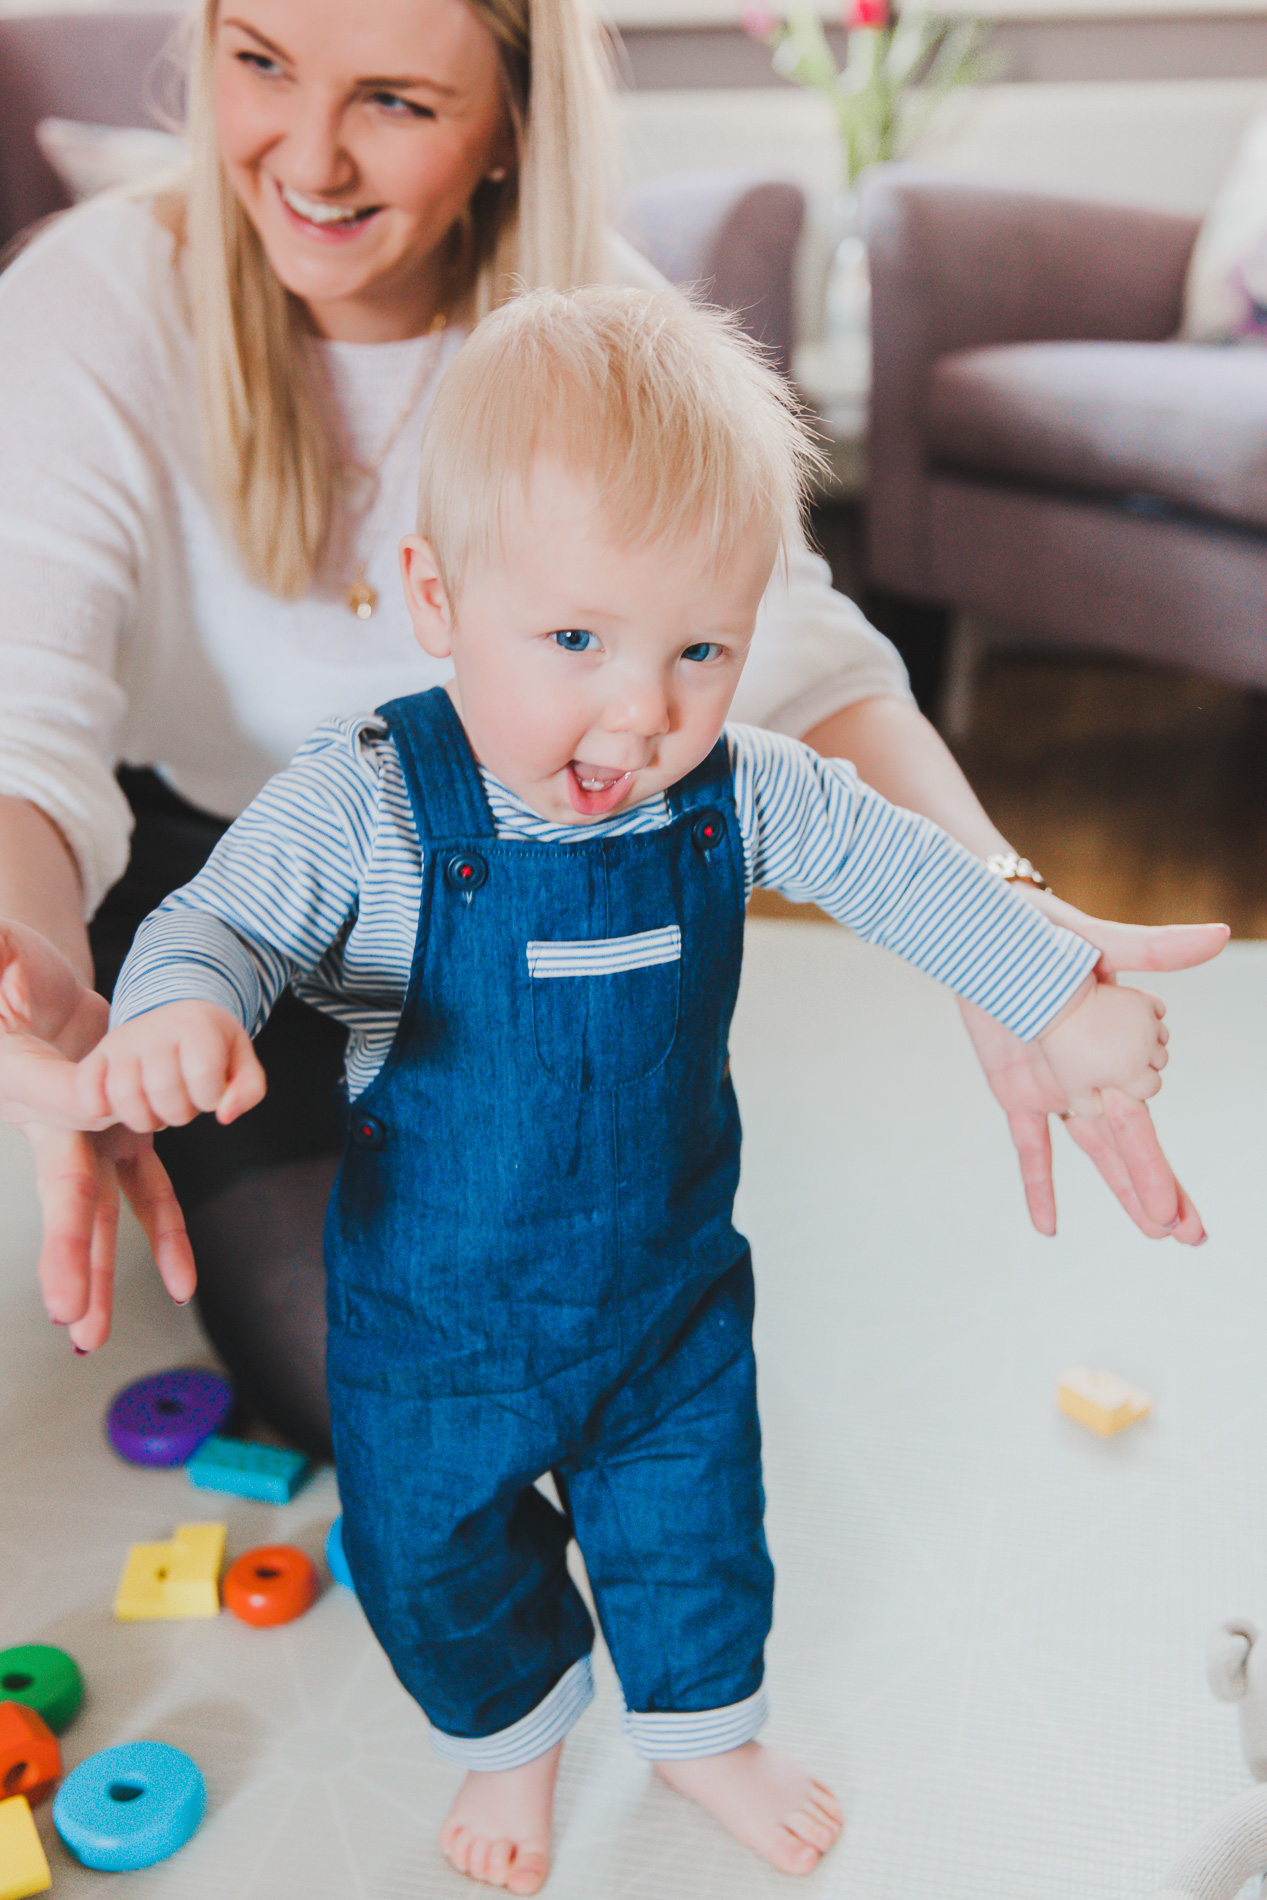 Will I miss his first steps?!